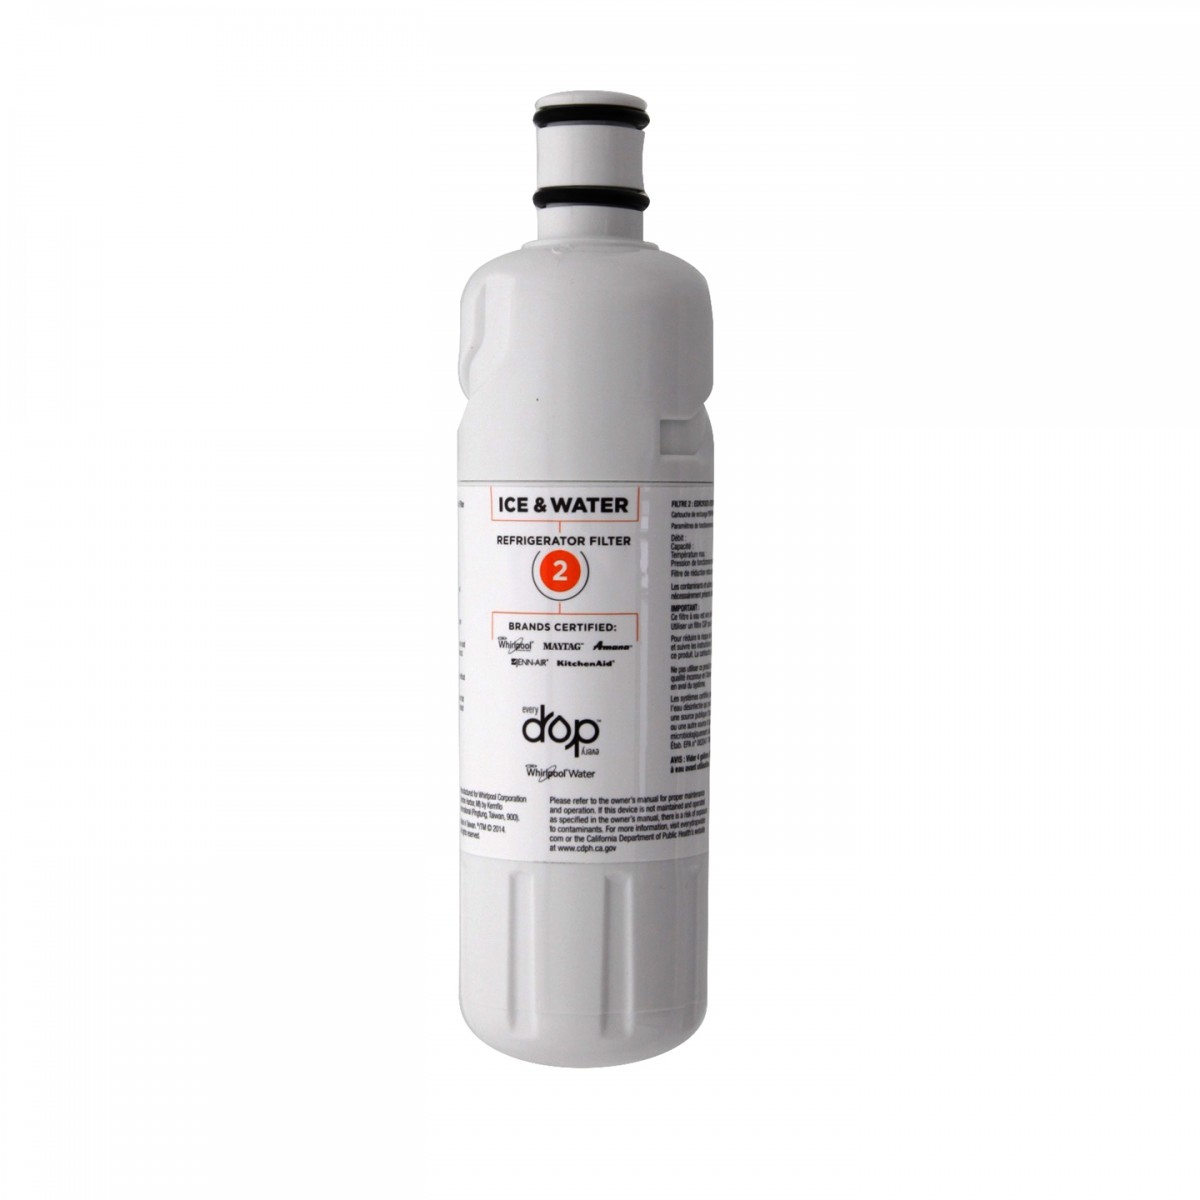 Everydrop Ice And Water Refrigerator Filter 2 By Whirlpool